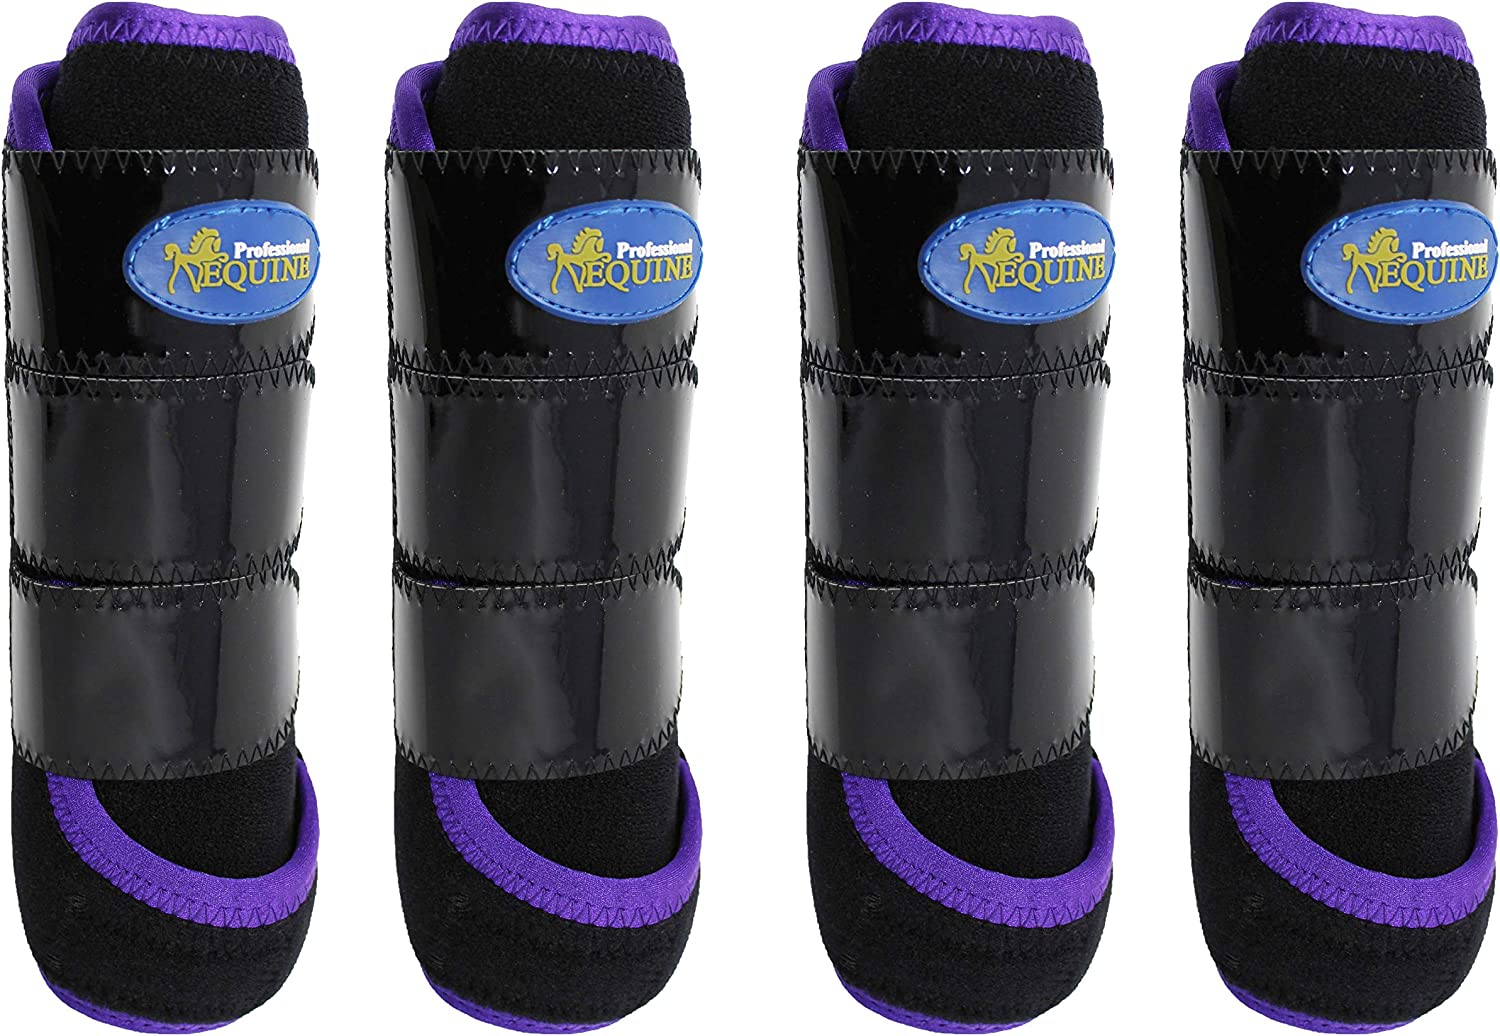 (Black Purple) - Professional Equine Horse Medium 4-Pack Sports Medicine Splint Boots 41C